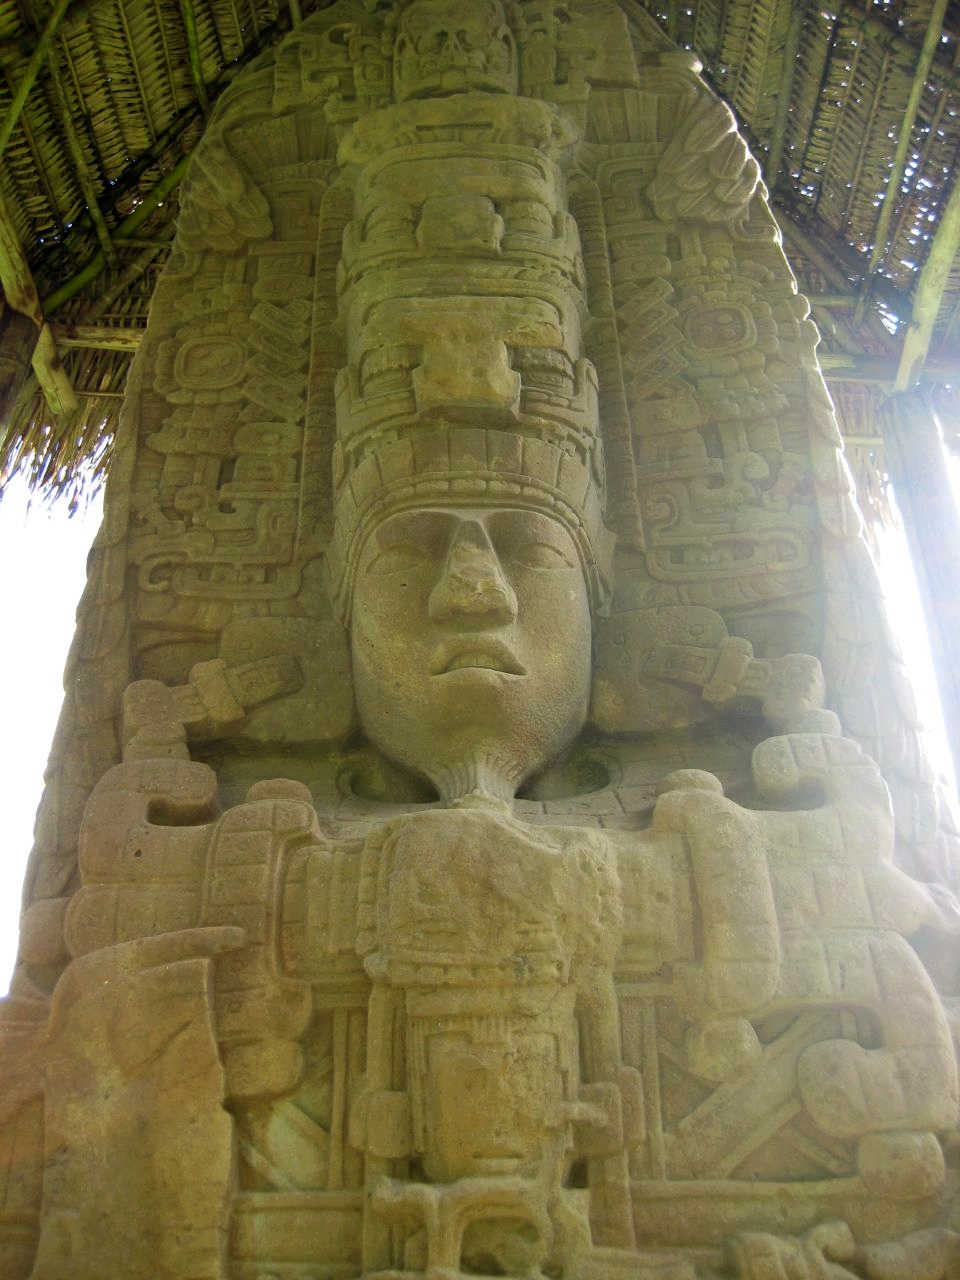 Stela D, north side, from Quiriguá, representing king K'ak' Tiliw Chan Yopaat. Photo taken on January 27, 2008.